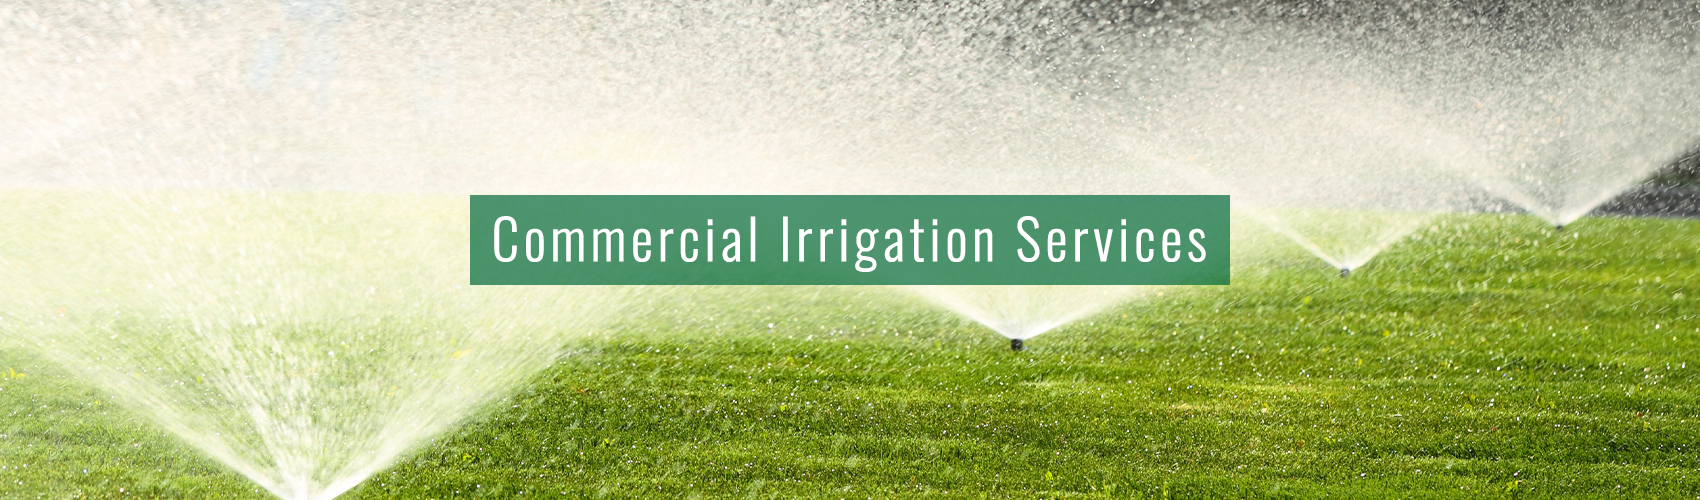 Commercial Irrigation Services Complete Landscaping Service